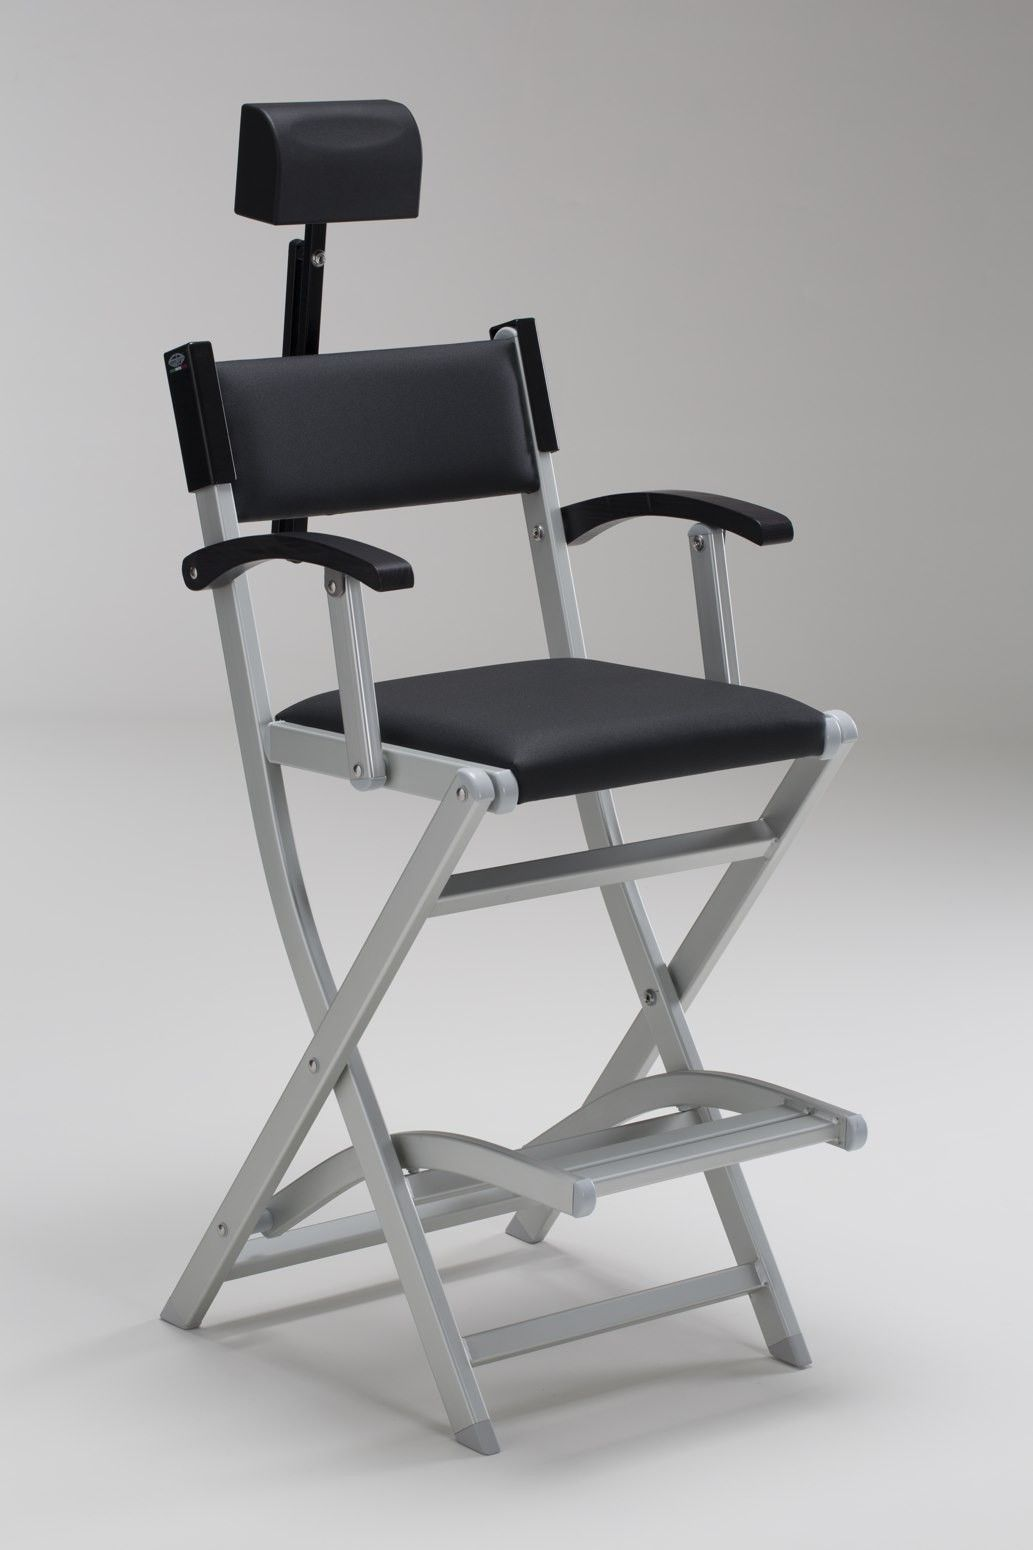 The Original Makeup Artist Chair By Cantoni Makeup Chair Makeup Artist Chair Makeup Studio Decor